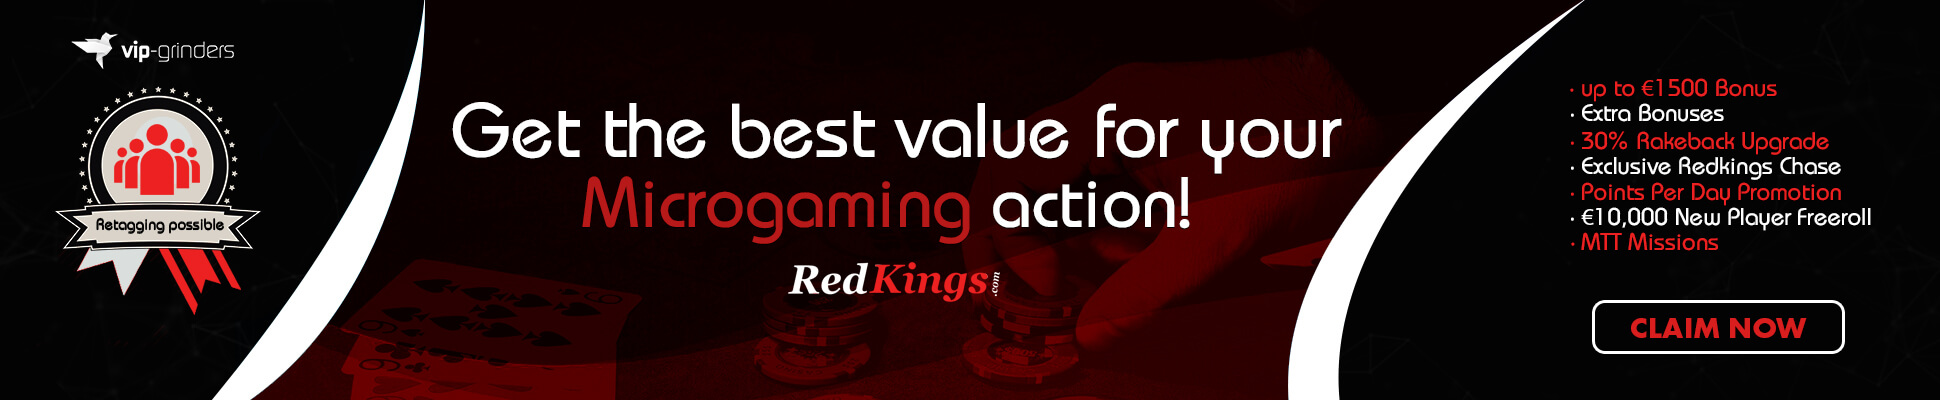 Redkings-new-slider-banner-final